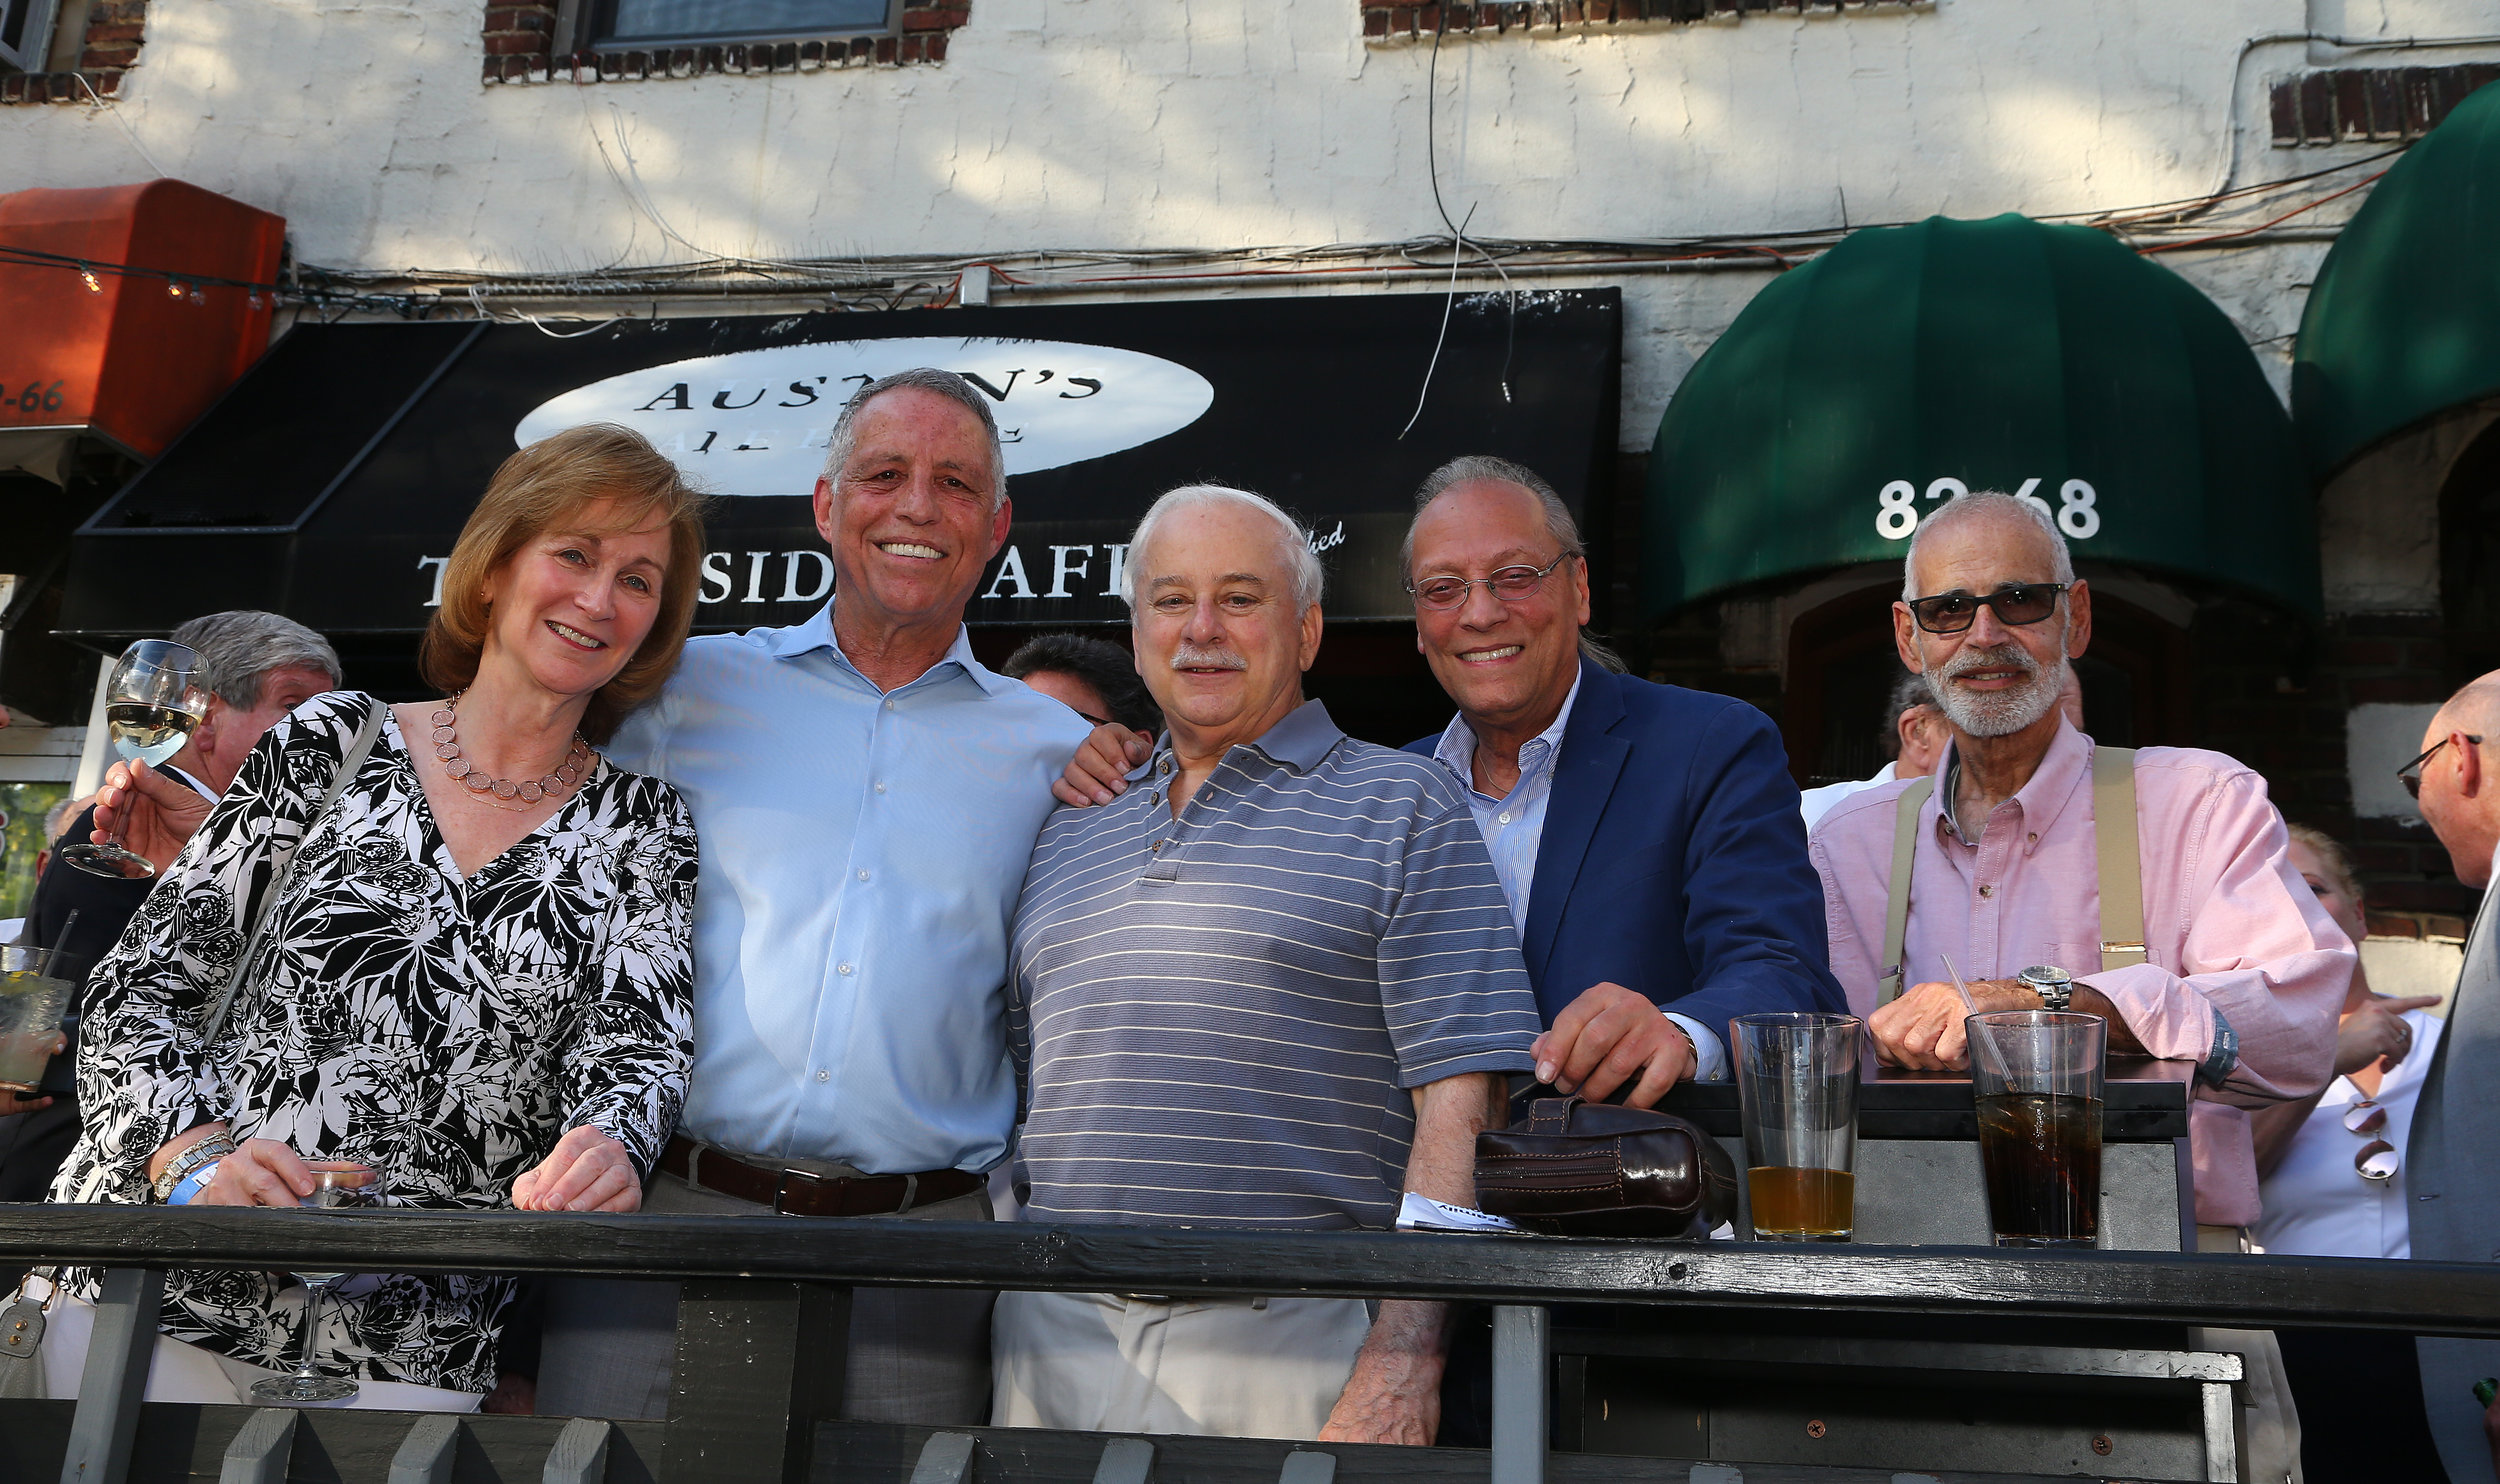 From left, Bonnie Cohen, Todd Greenberg, the Hon. Greg Lasak, Dominic Addabbo and the Hon. George Heymann.